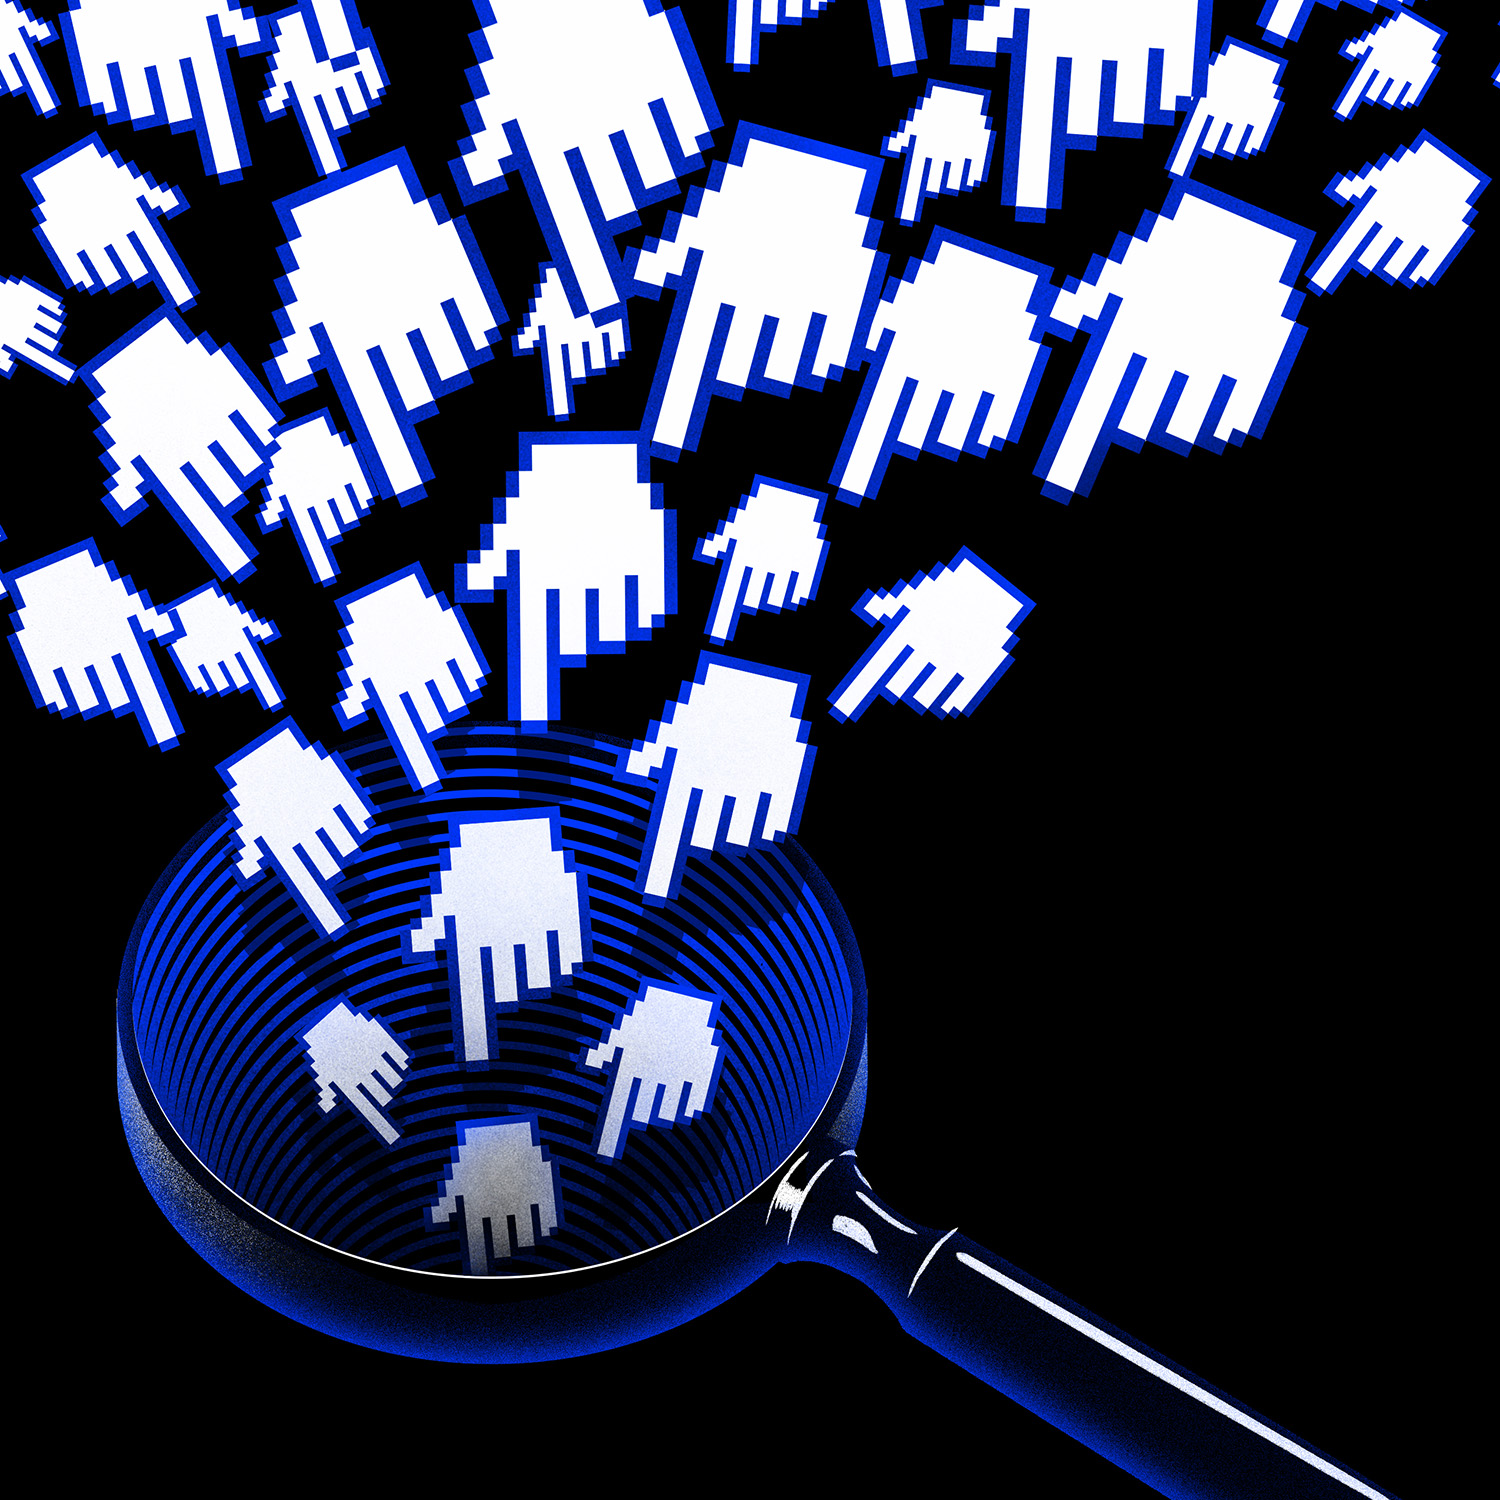 Image of a cluster of digital, white pointing hands descending towards a blue magnifying glass with a black background.